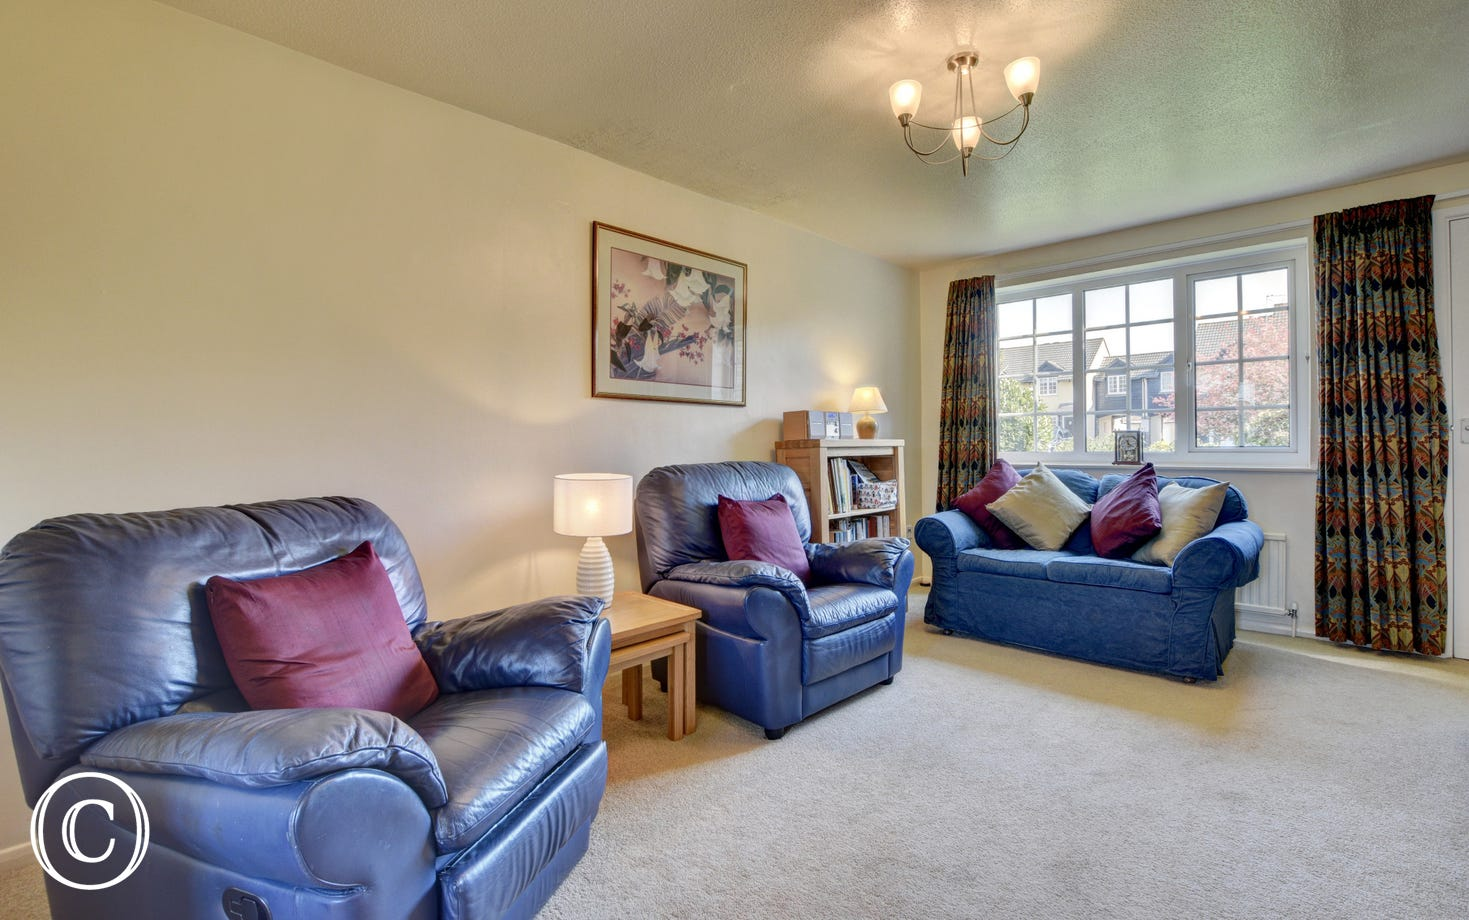 Comfortable leather seating in the sitting room